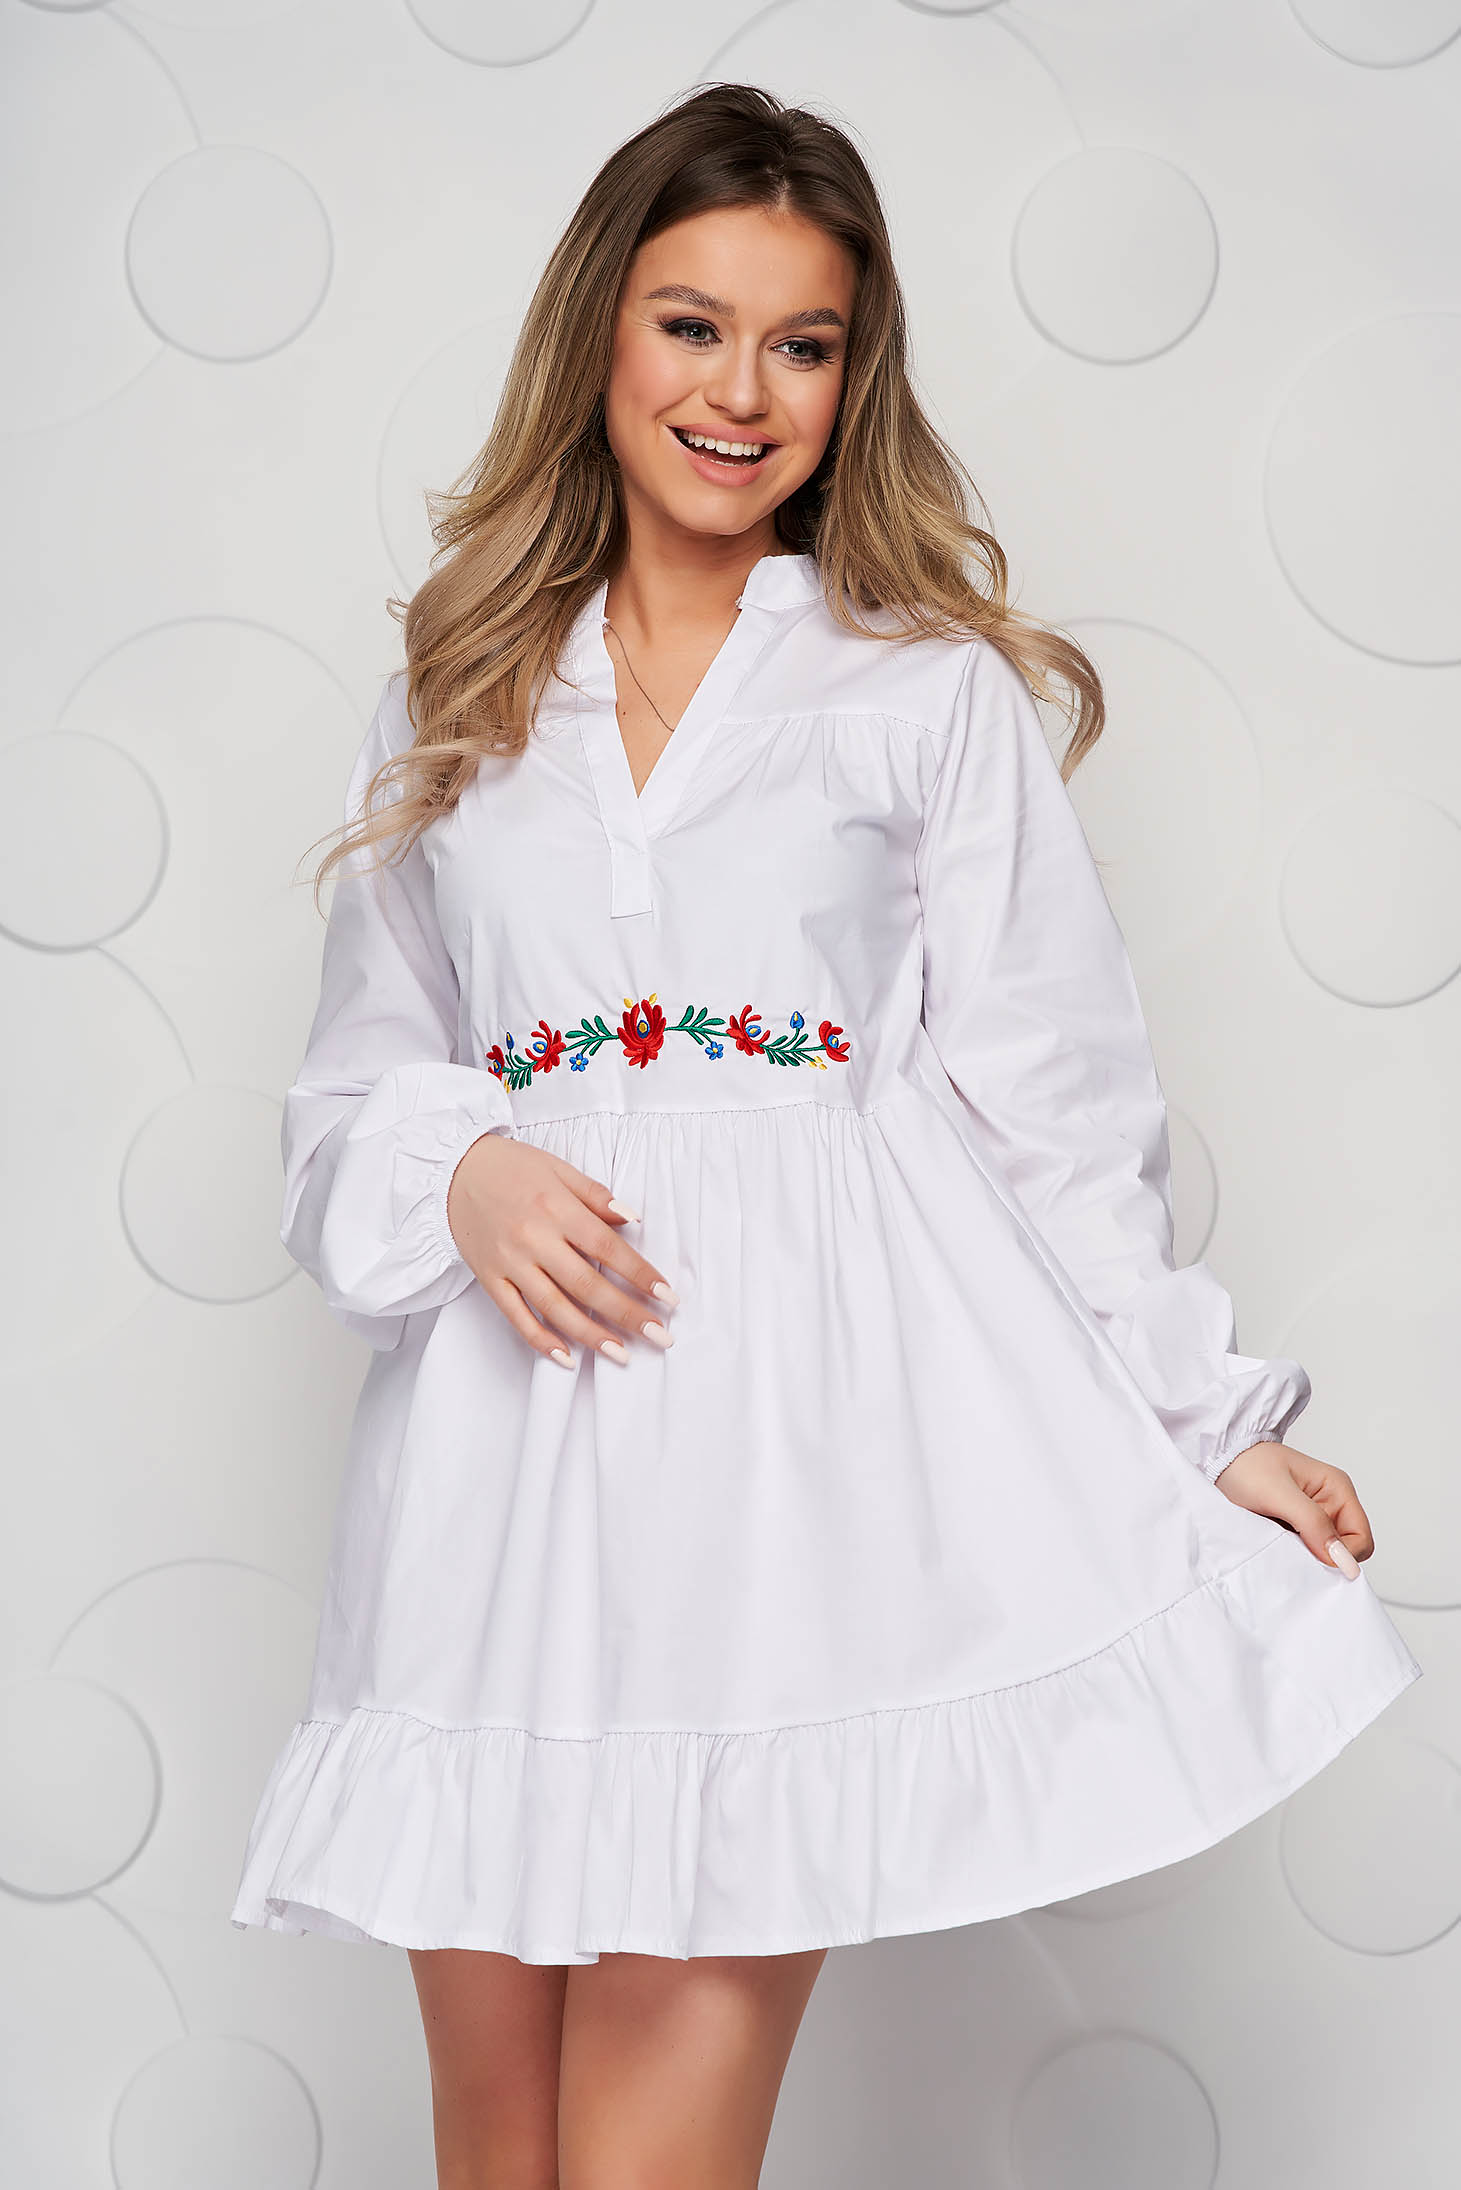 White dress loose fit with ruffle details poplin, thin cotton